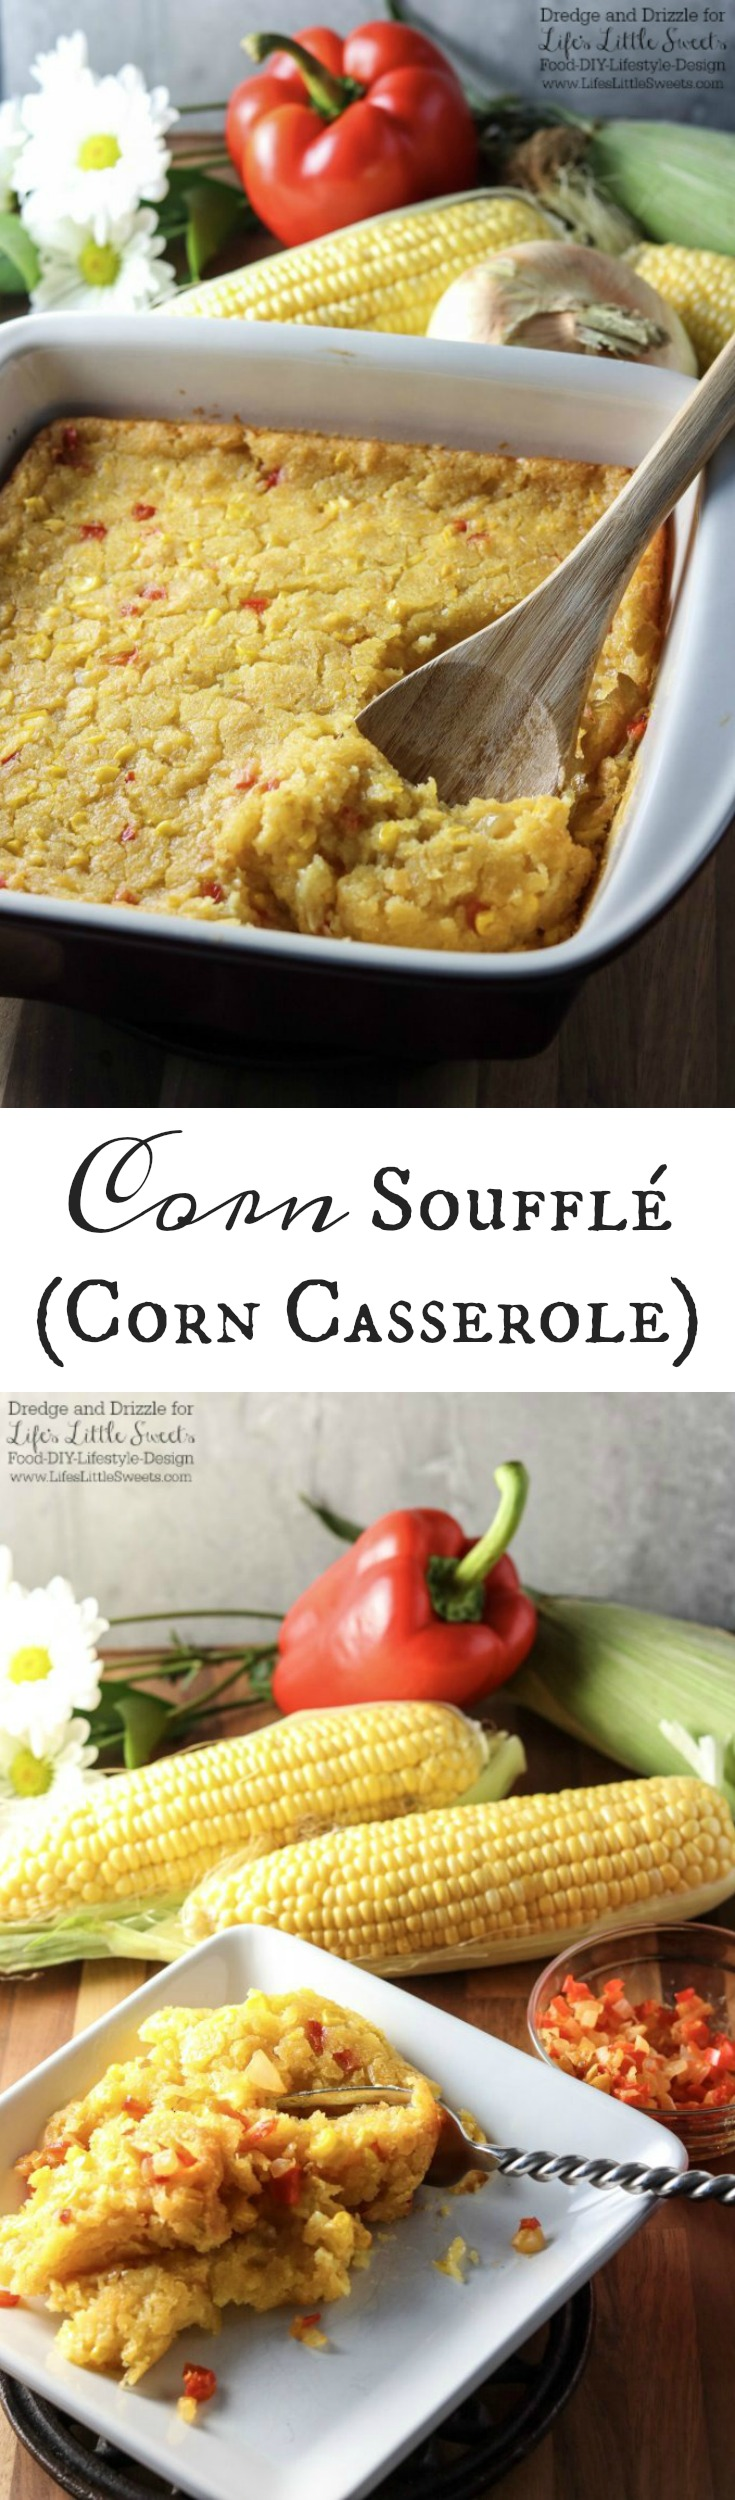 If there were a non-traditional dessert you could eat right along with a meal, this Corn Soufflé would be it. It's creamy and sweet and uses corn three ways; fresh corn right off the cob, creamed corn, and corn meal. Corn Soufflé is the perfect side dish to a cookout, weeknight dinner, or holiday meal. Little nuggets of onion and sweet red bell pepper give it even more fresh-from-the-garden flavors. Dredge and Drizzle for www.lifeslittlesweets.com